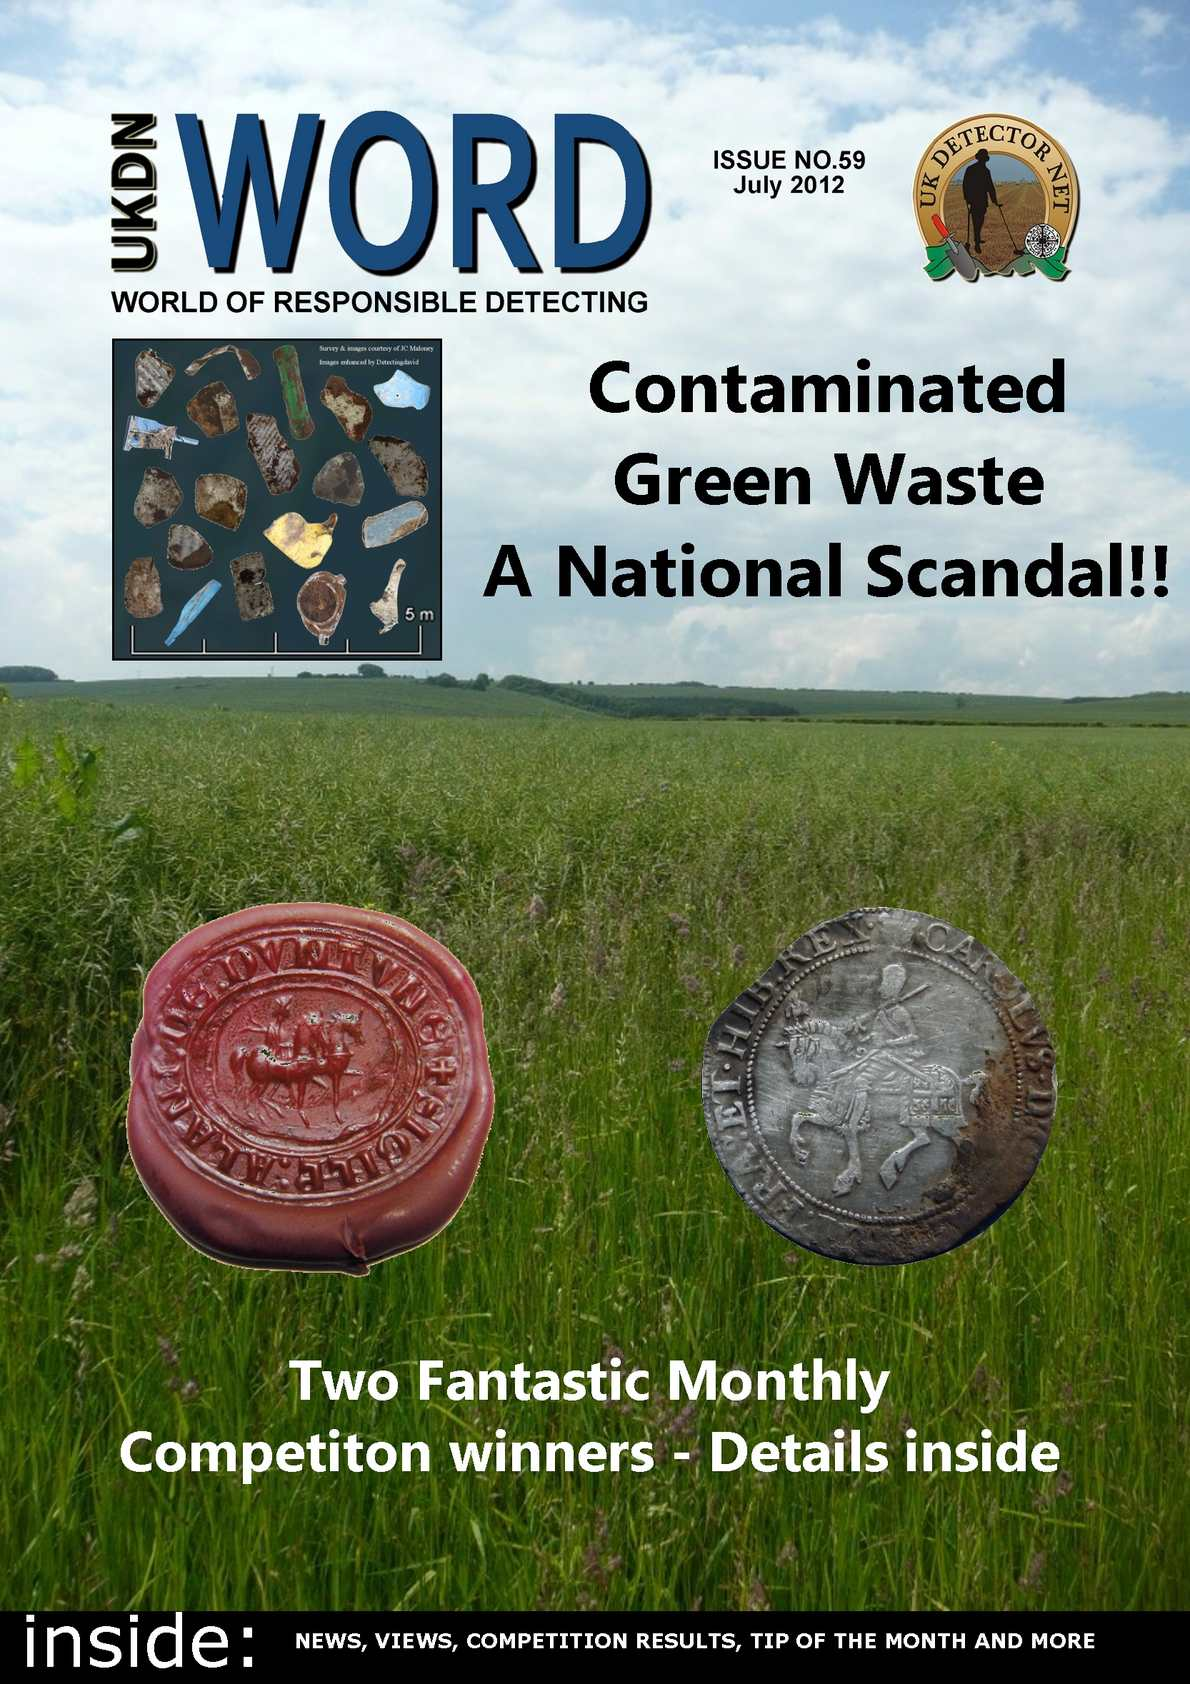 UKDN Word - Issue 59 - July 2012